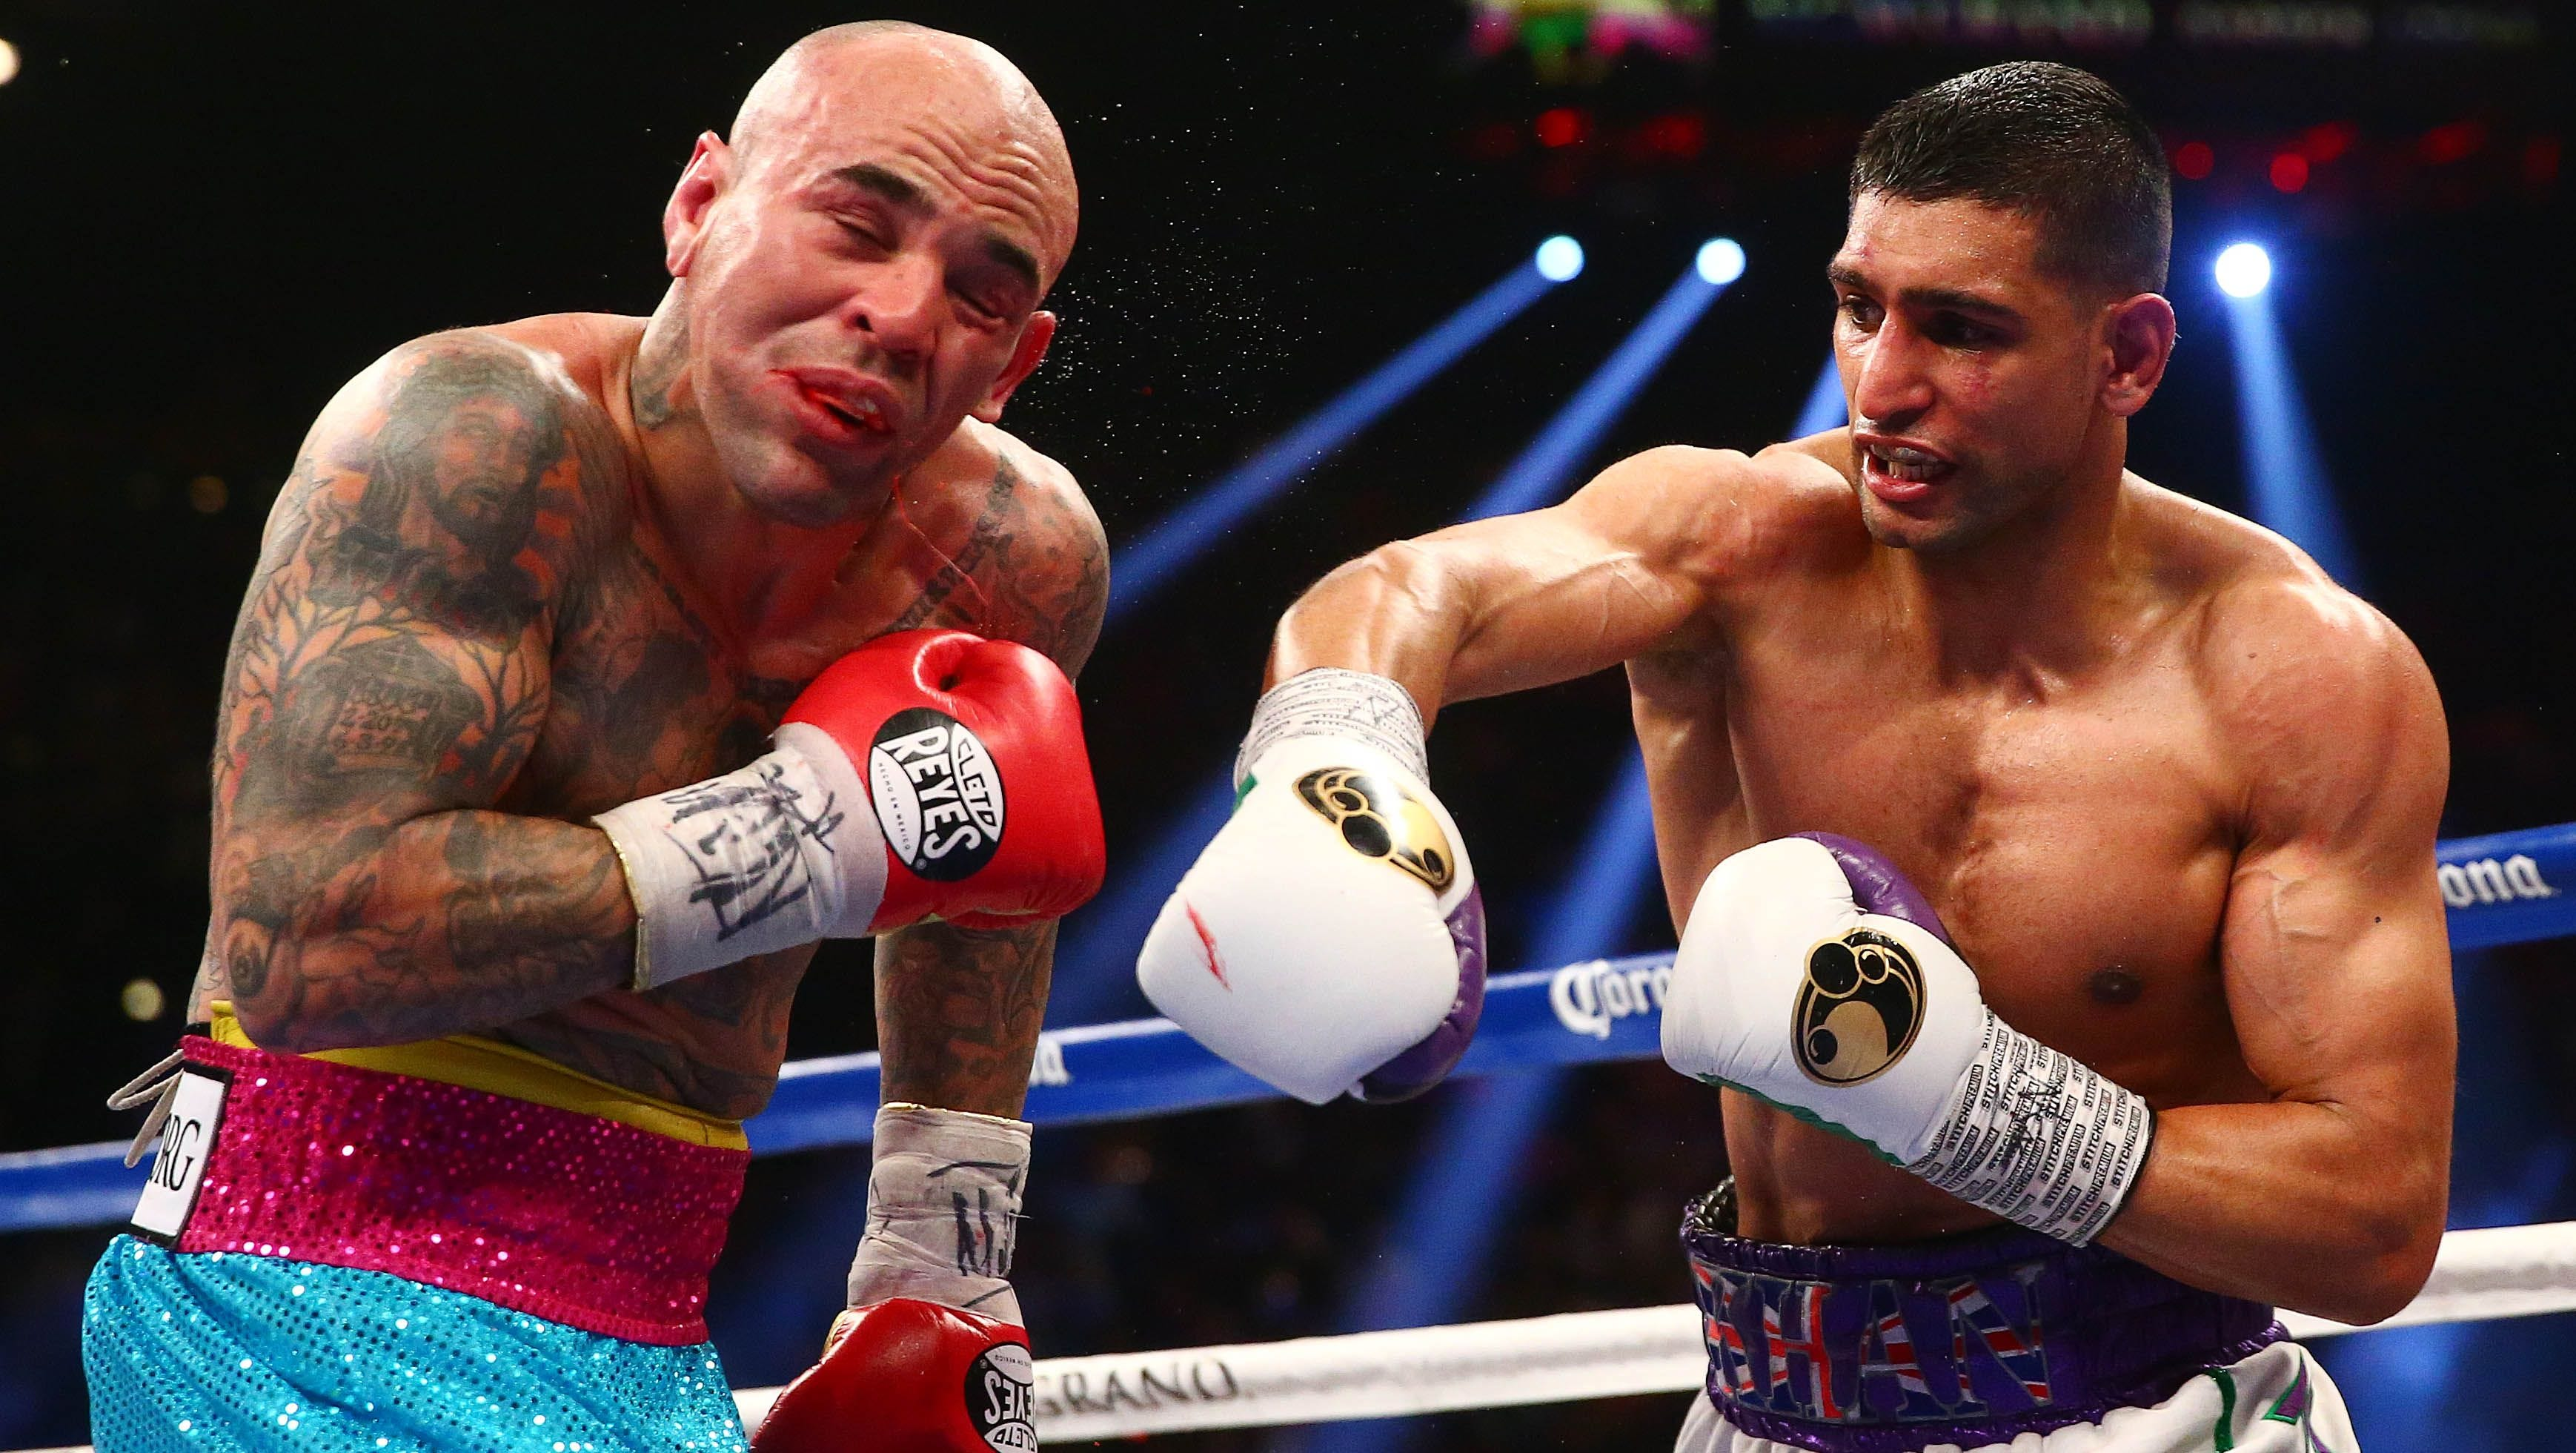 Amir Khan (right) vs. Luis Collazo. Photo credit: Mark J. Rebilas/USA TODAY Sports